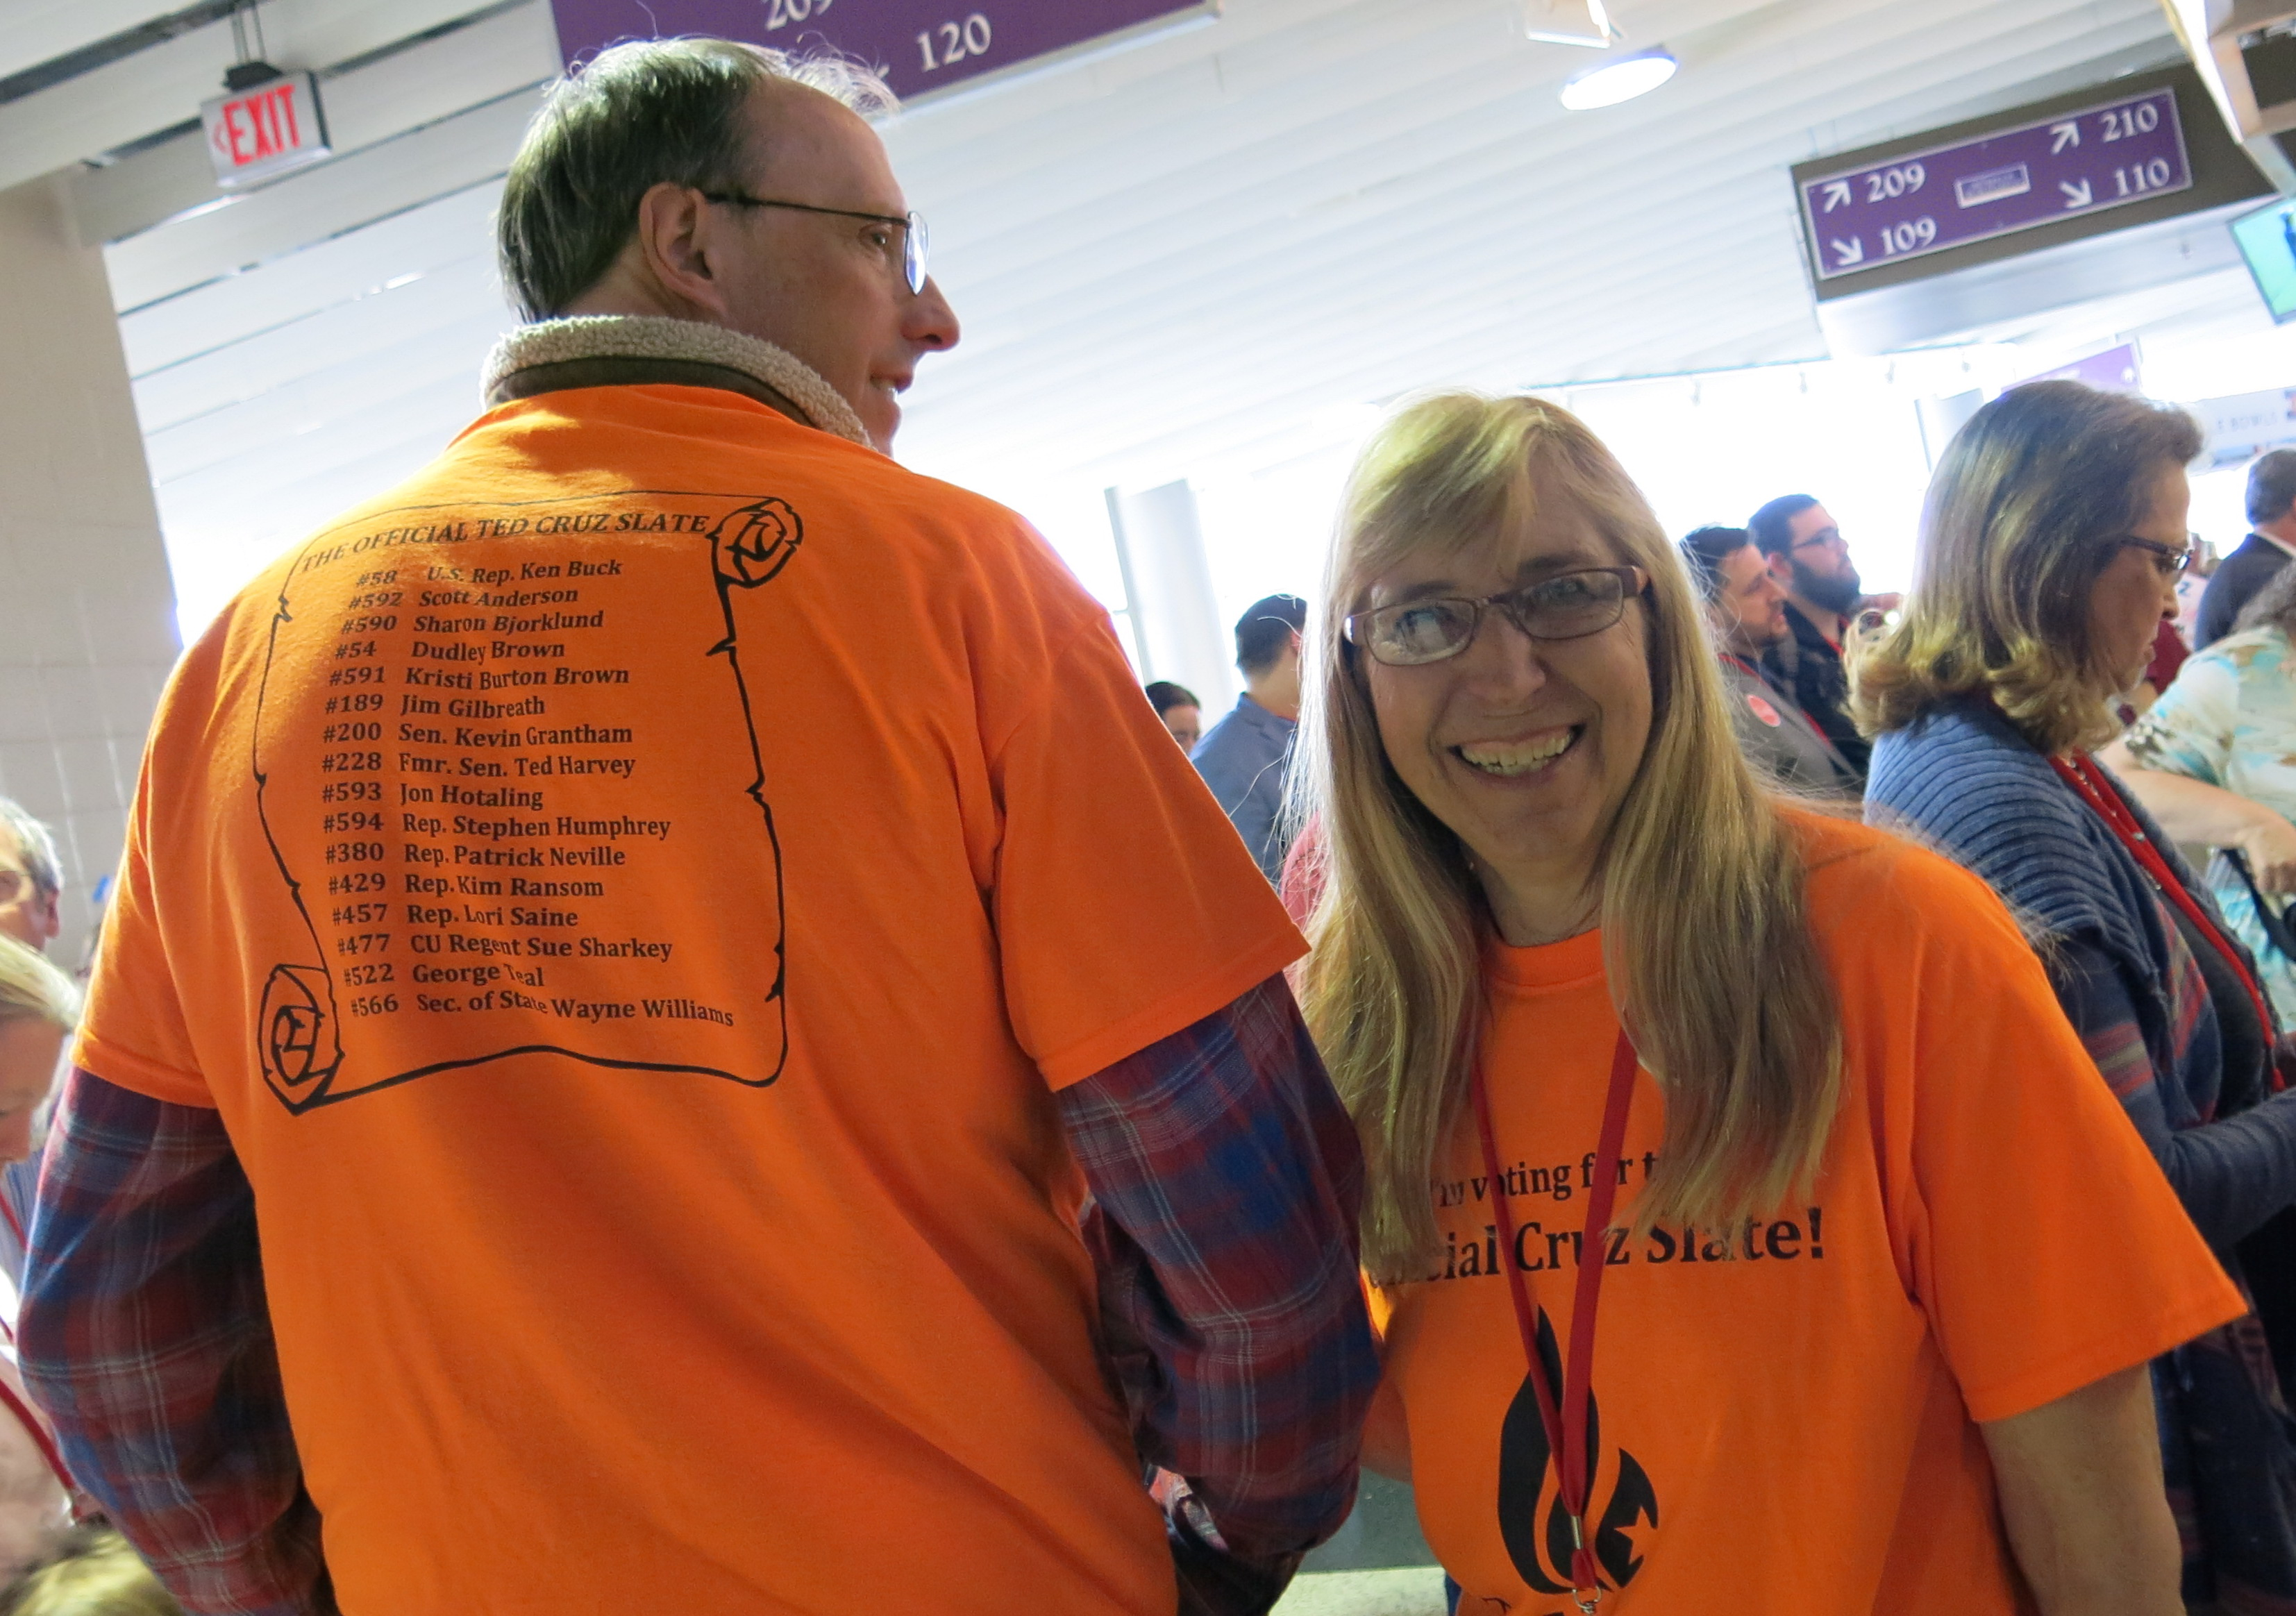 Photo: Cruz Supporters In Orange T-Shirts, CO GOP Convention